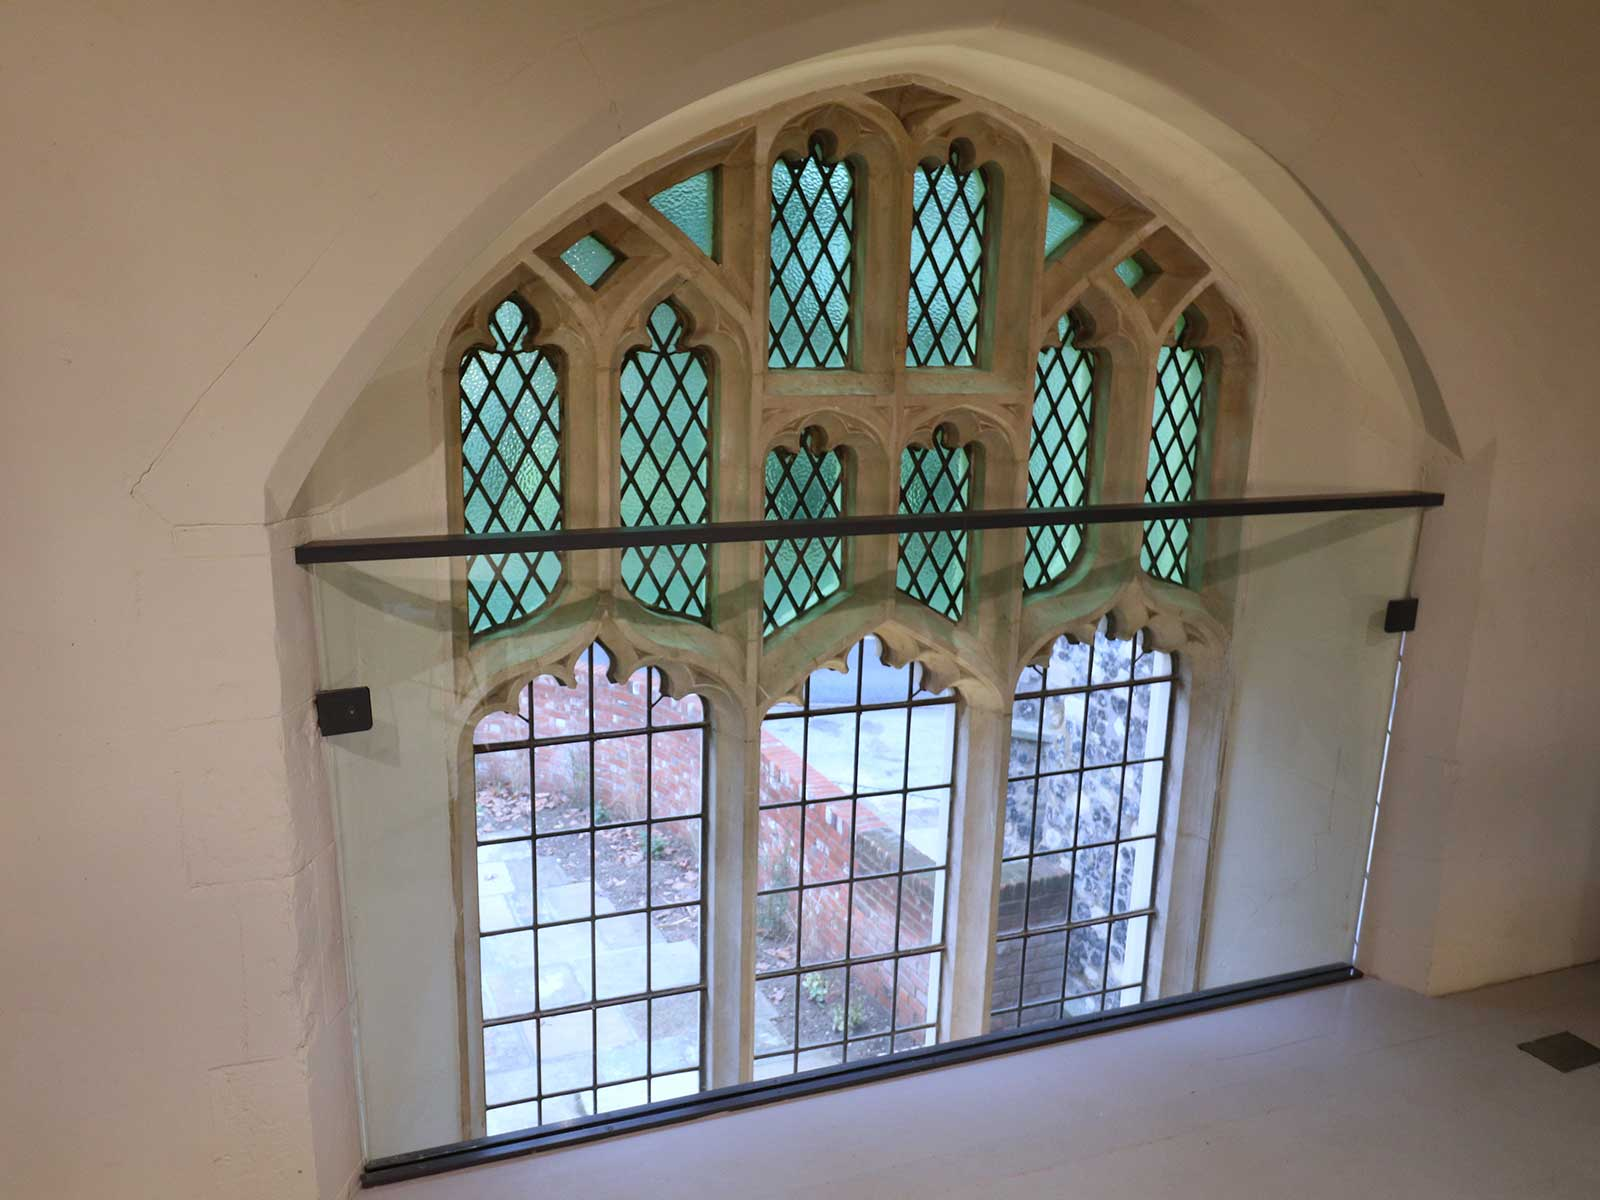 Frameless Glass Balustrade to Protect Stained Glass Window